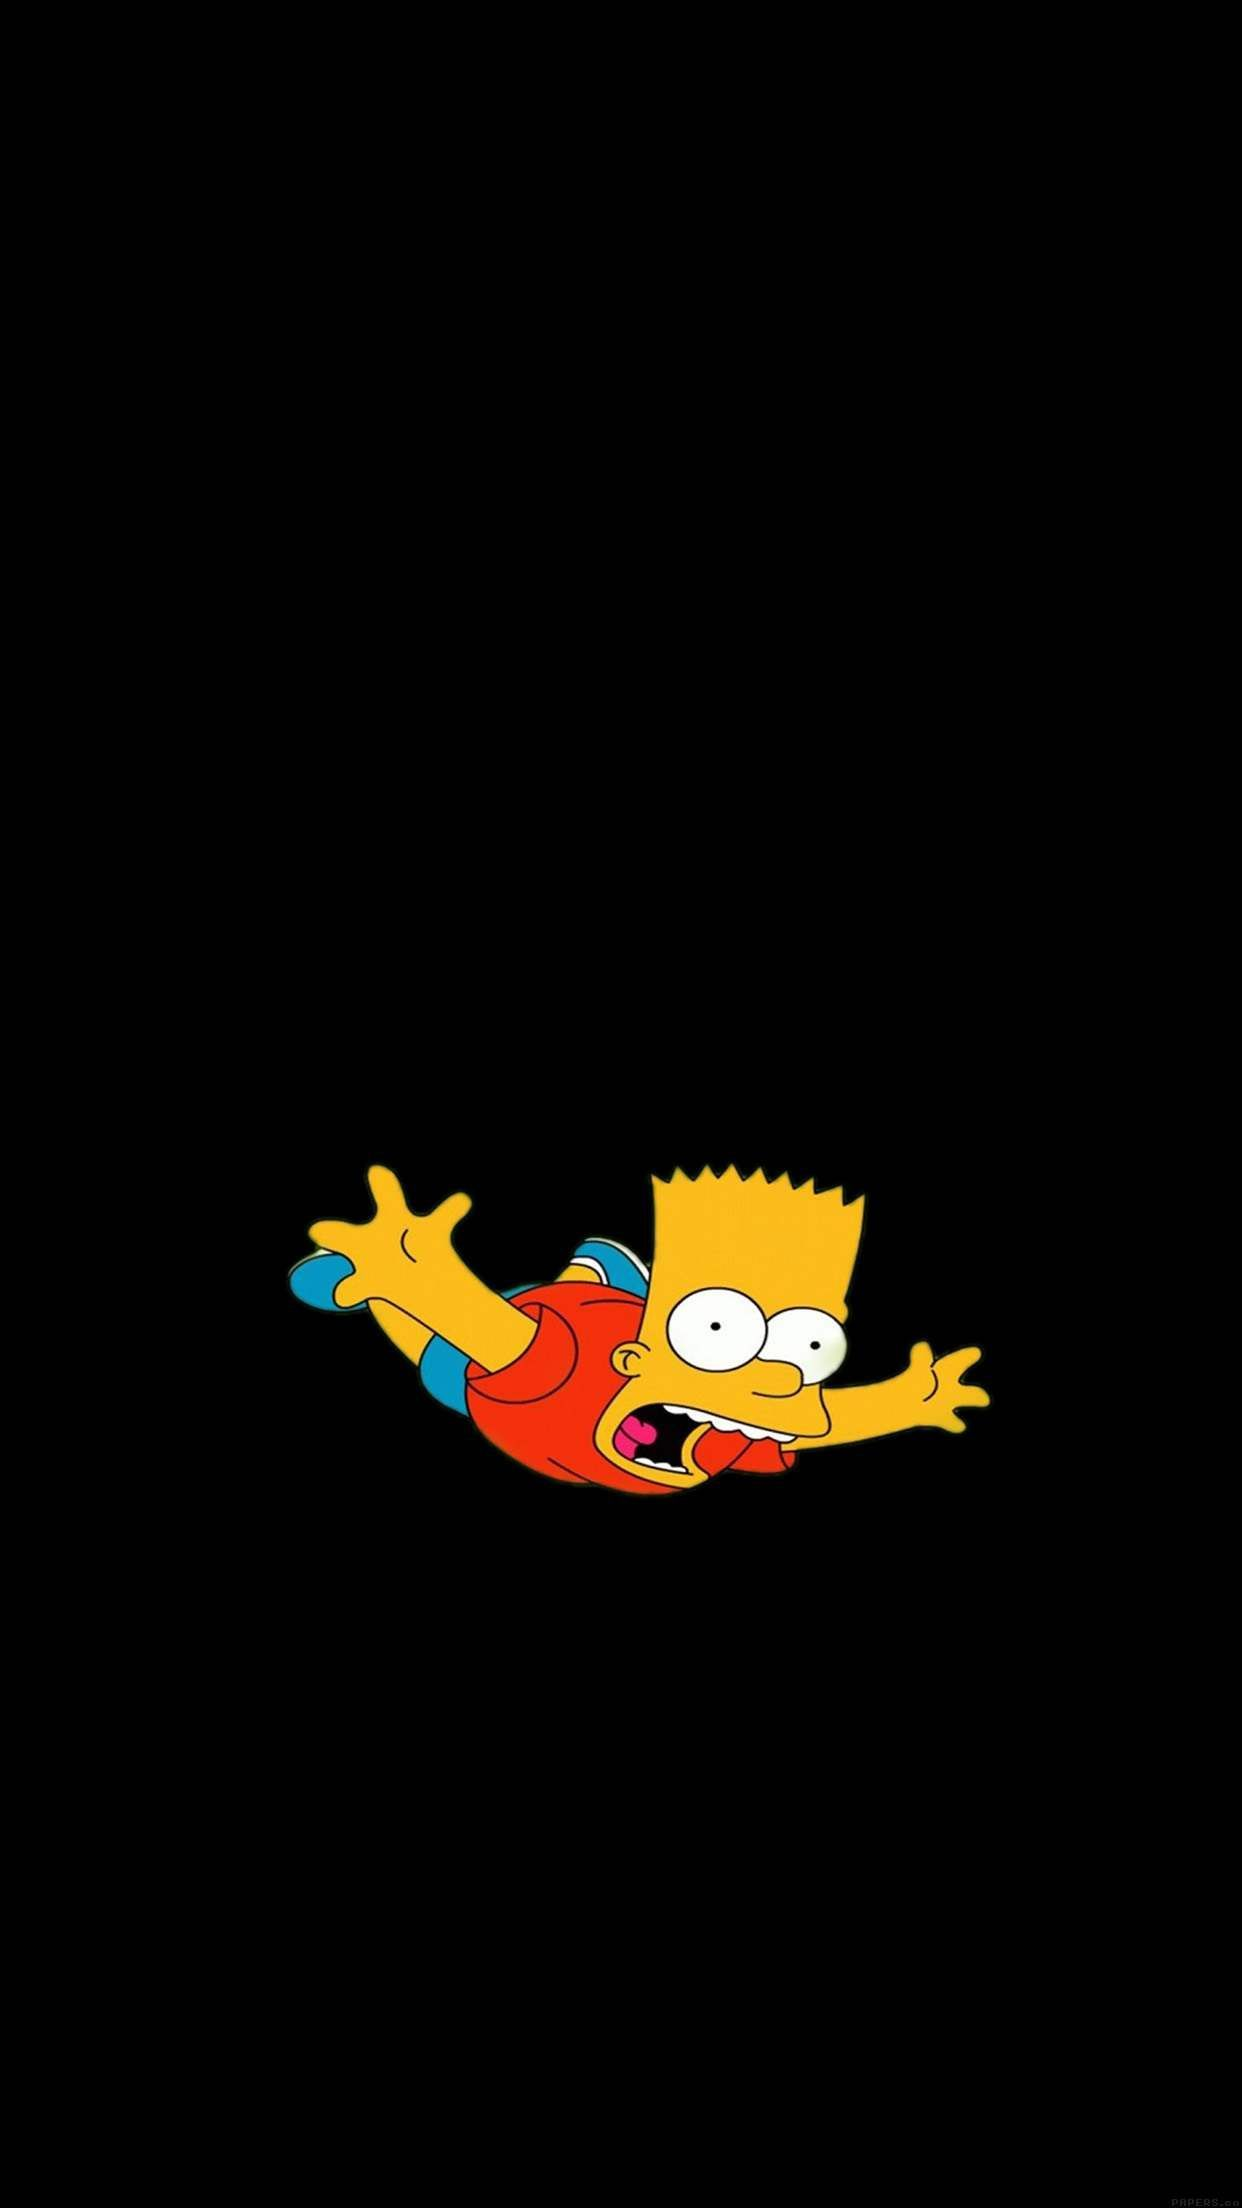 Aesthetic Bart Simpson Iphone Wallpapers Top Free Aesthetic Bart Simpson Iphone Backgrounds Wallpaperaccess